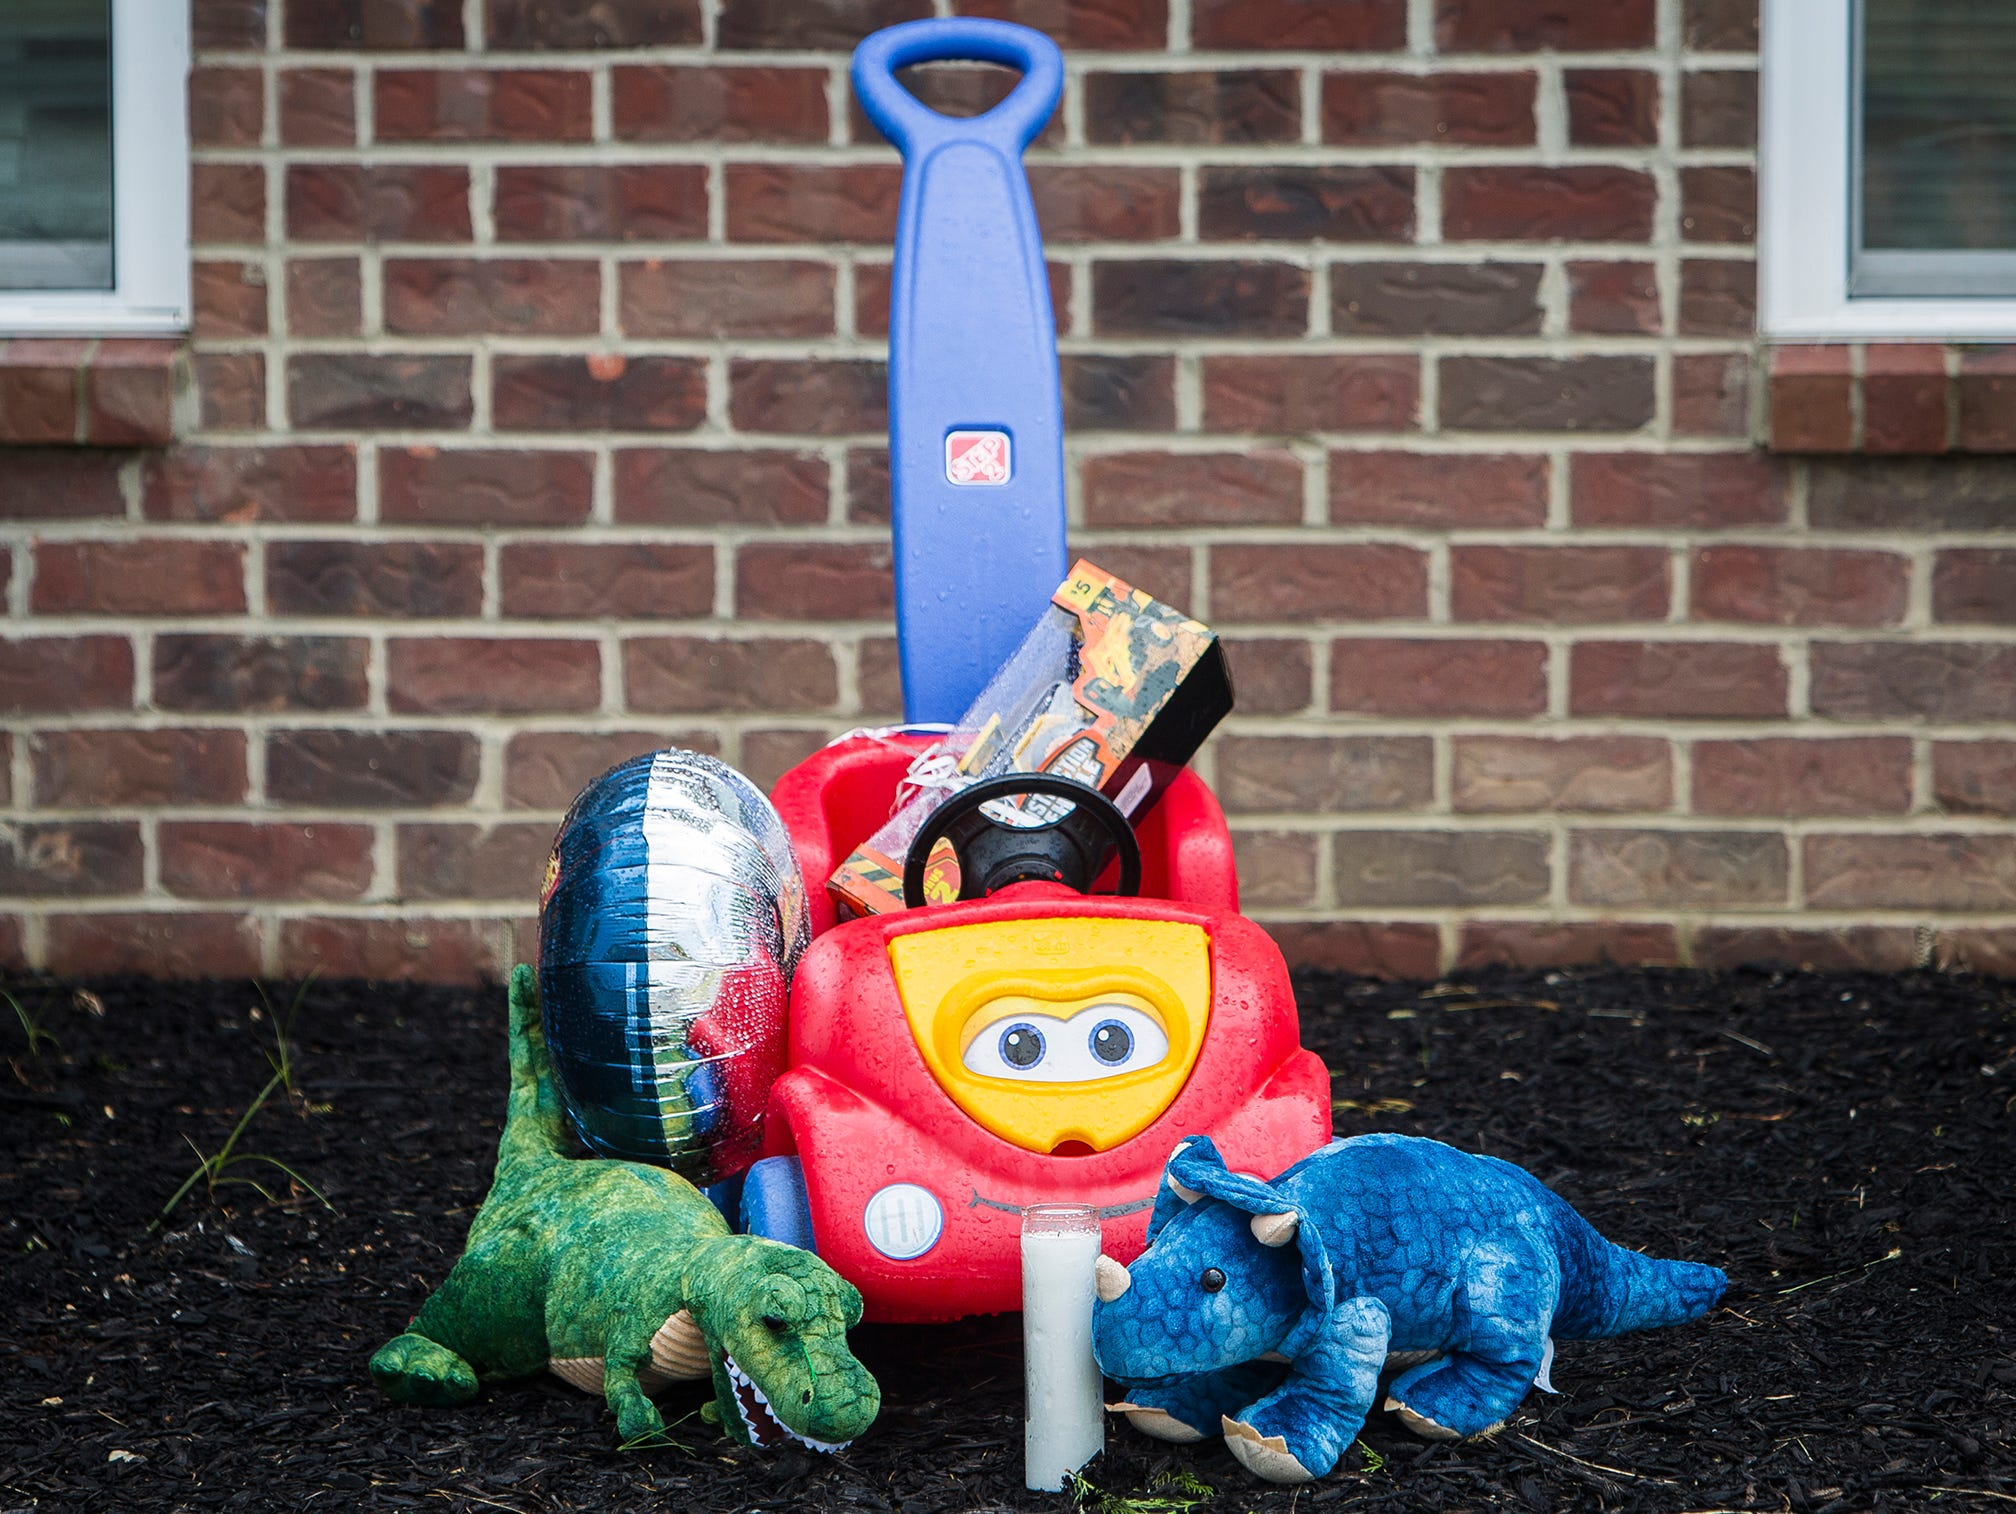 A memorial is positioned outside of a residence at Salem Place Apartments in Daleville near where two-year-old Jaxon Stults was found dead in a vehicle late Wednesday night.